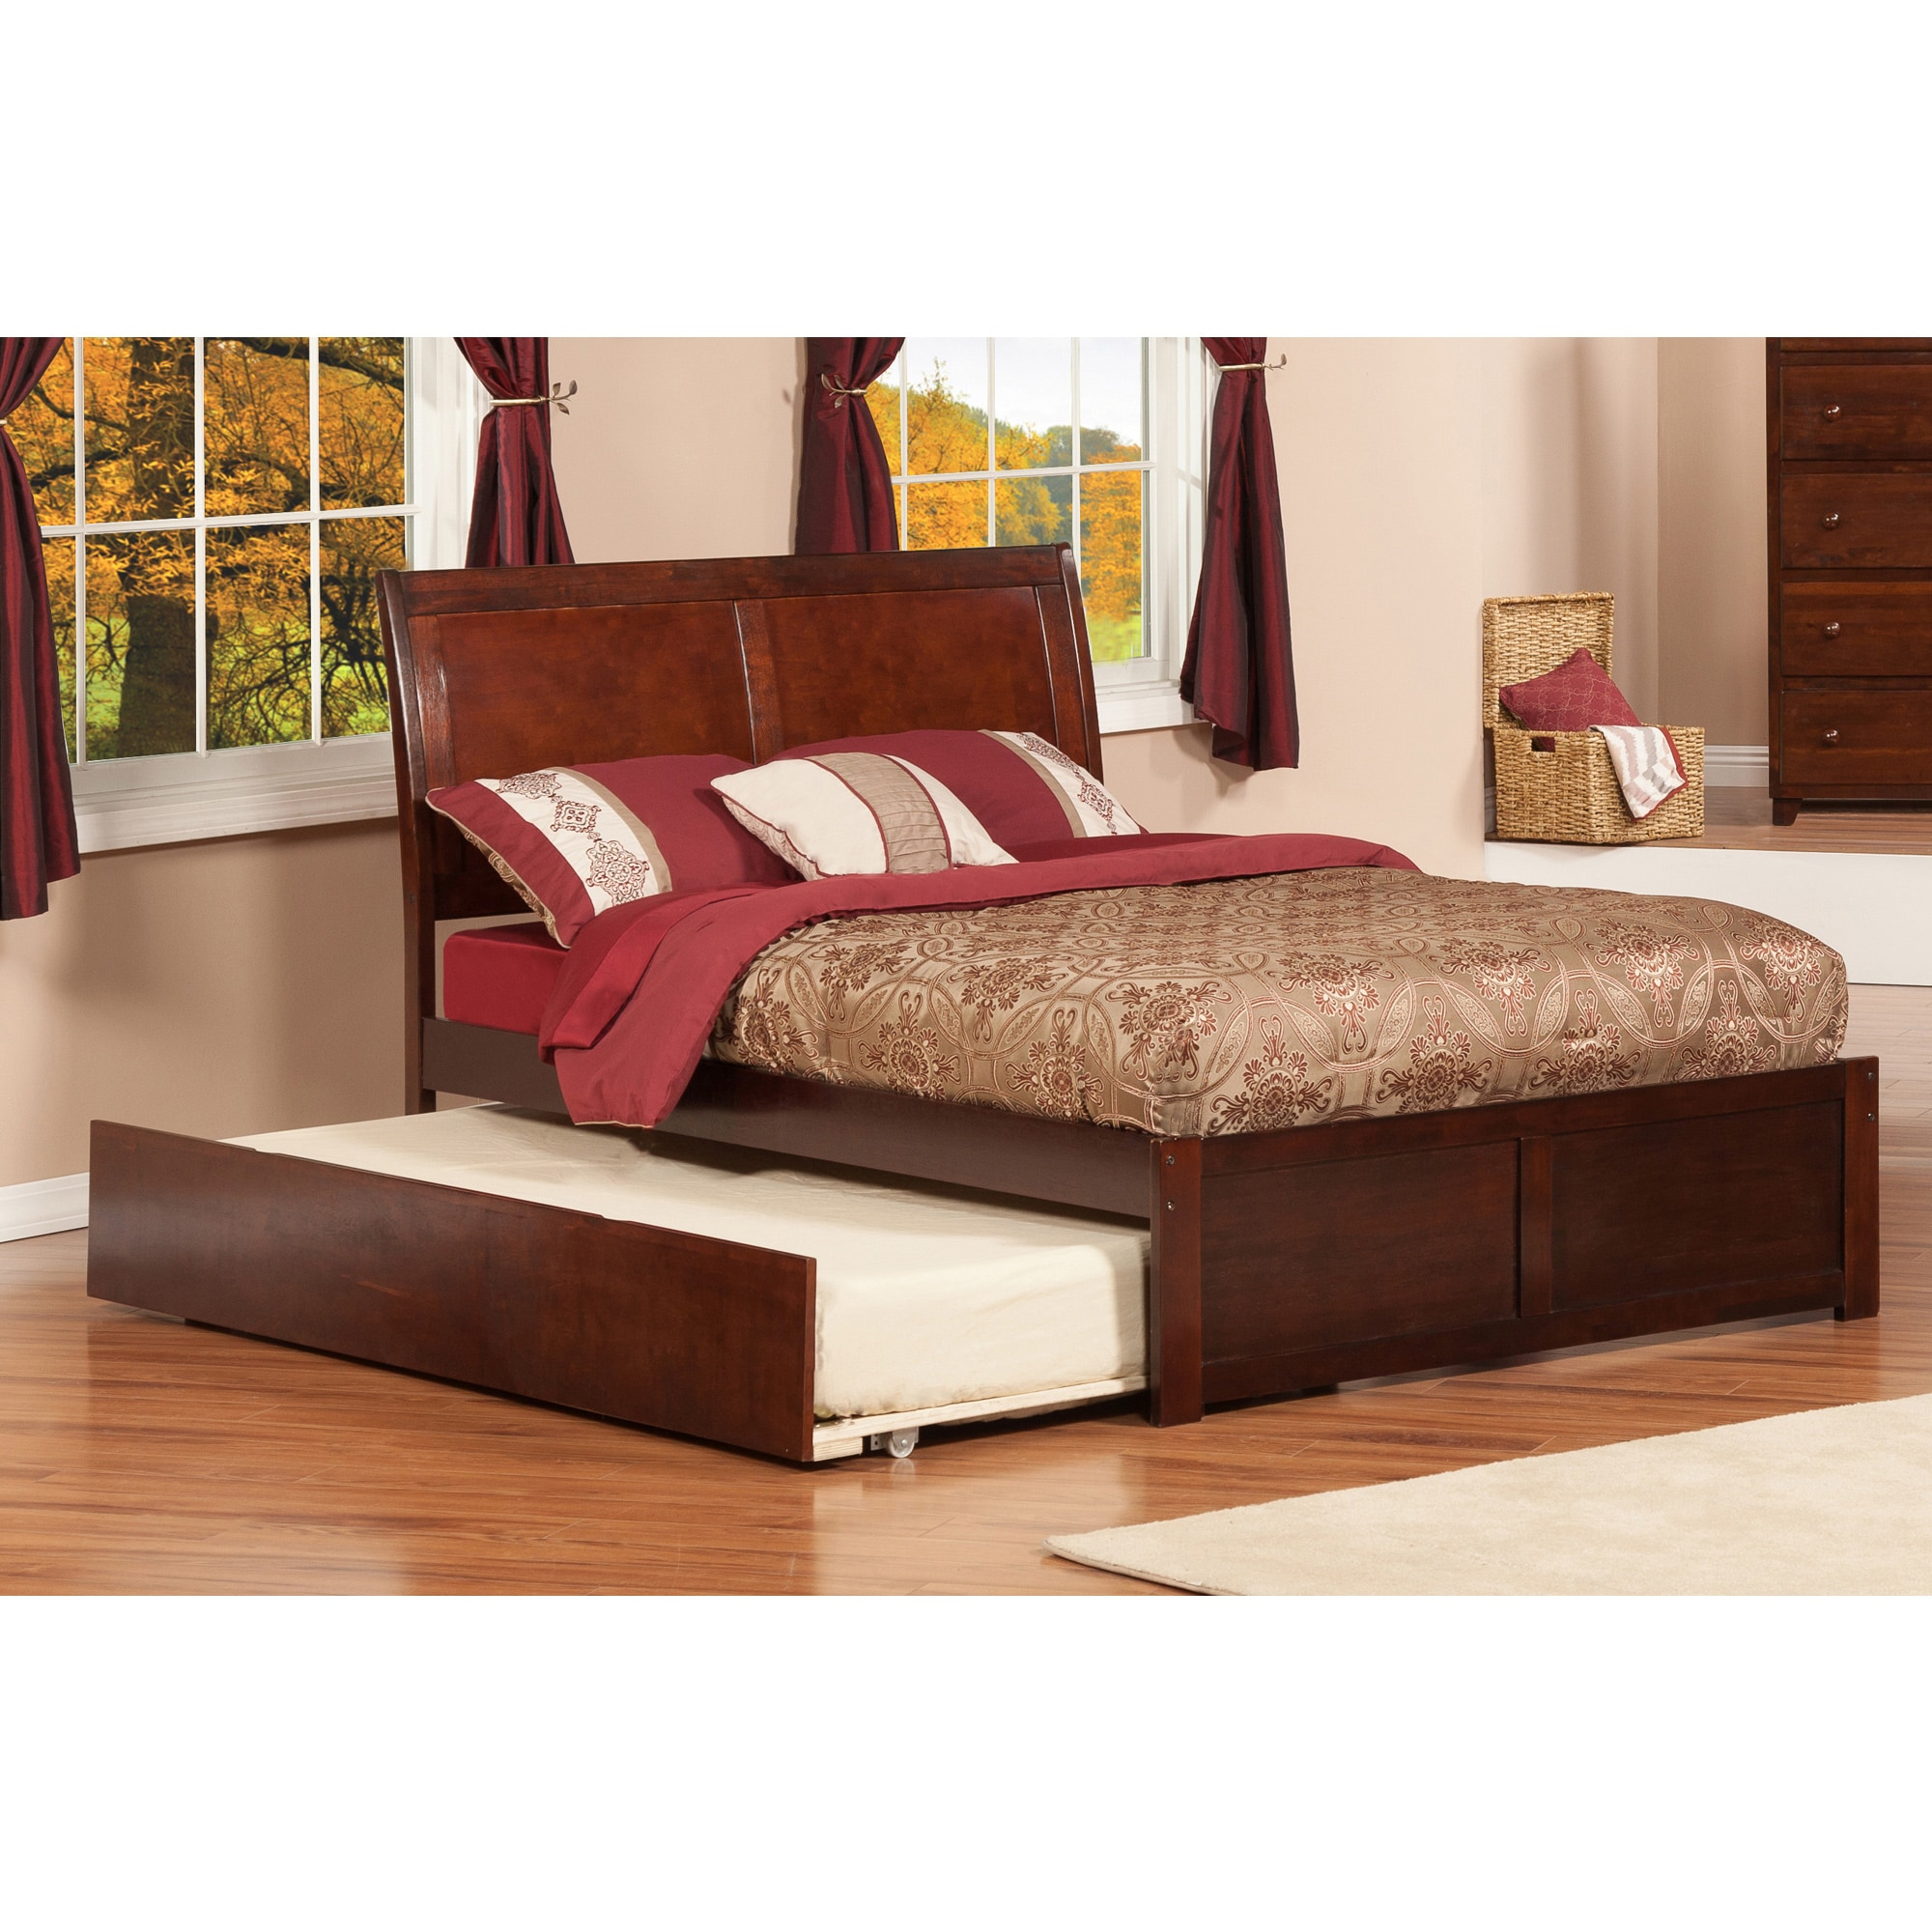 Atlantic Furniture Portland Walnut Brown Panel Full-size Bed with Trundle Bed by Overstock